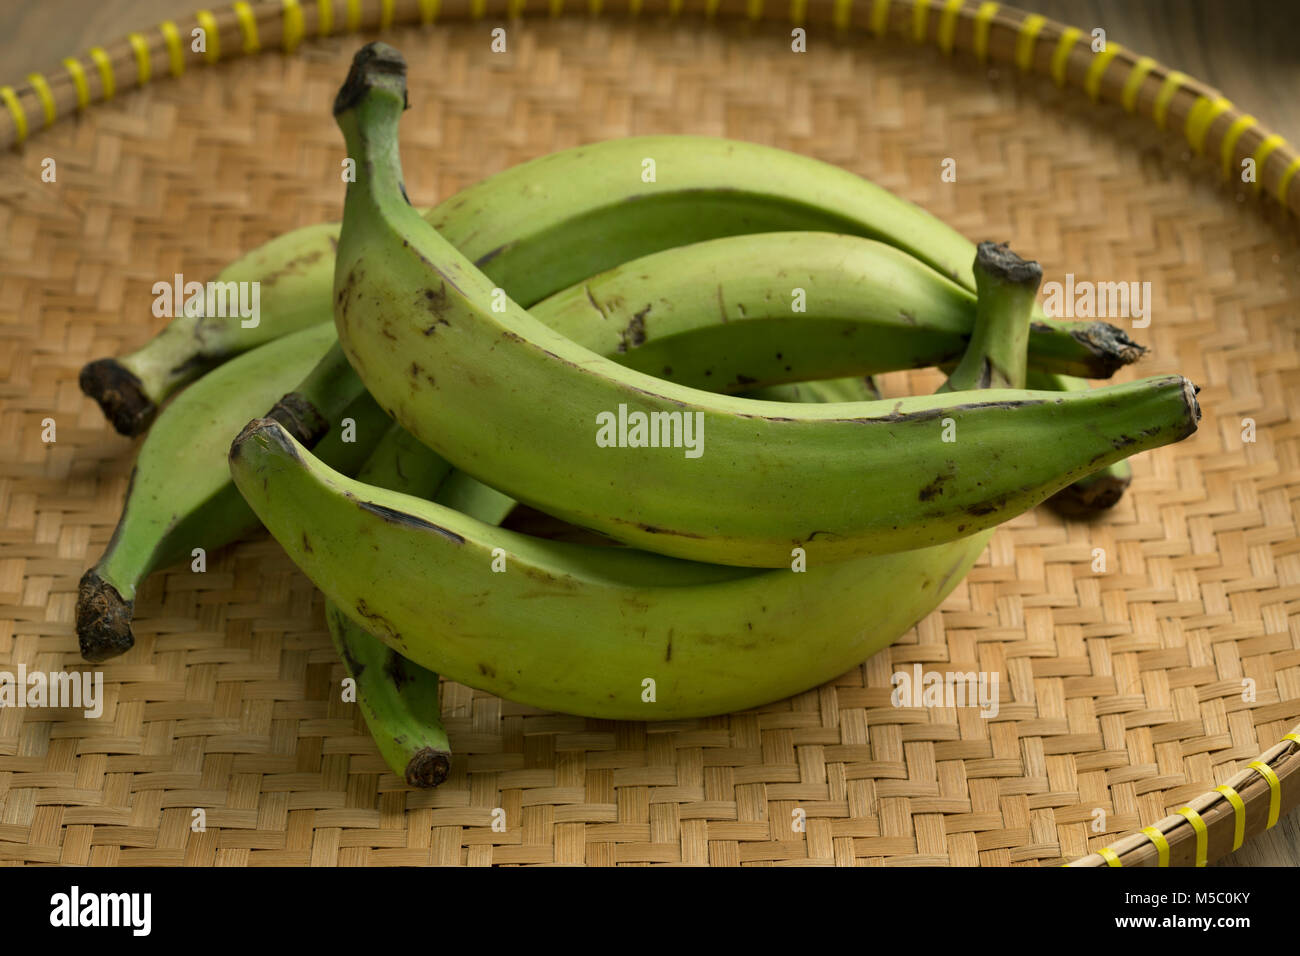 Basket with fresh green unripe bananas - Stock Image